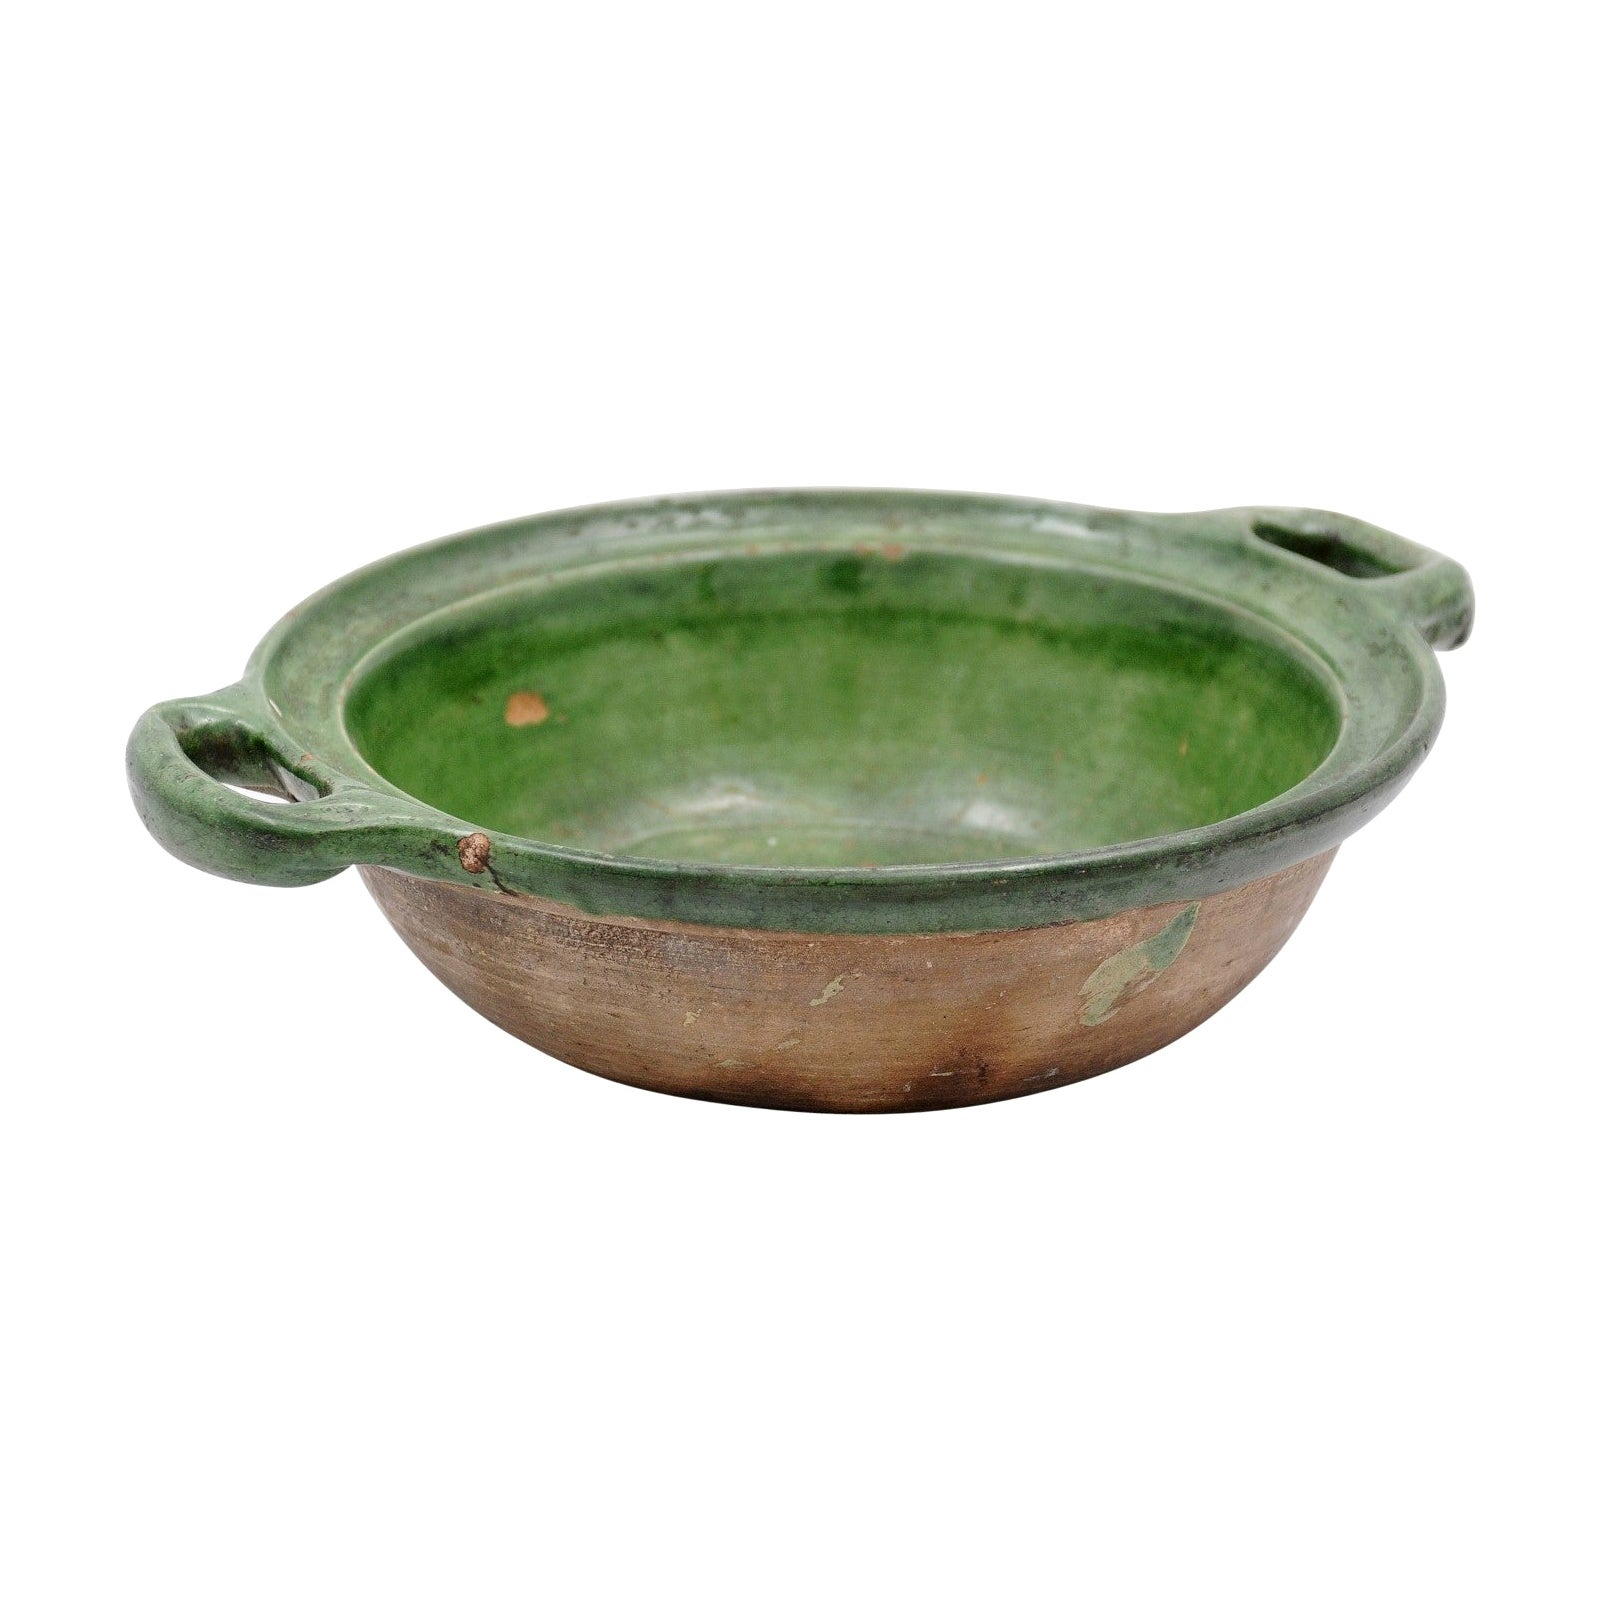 French Provincial 19th Century Green Glazed Pottery Bowl with Lateral Handles